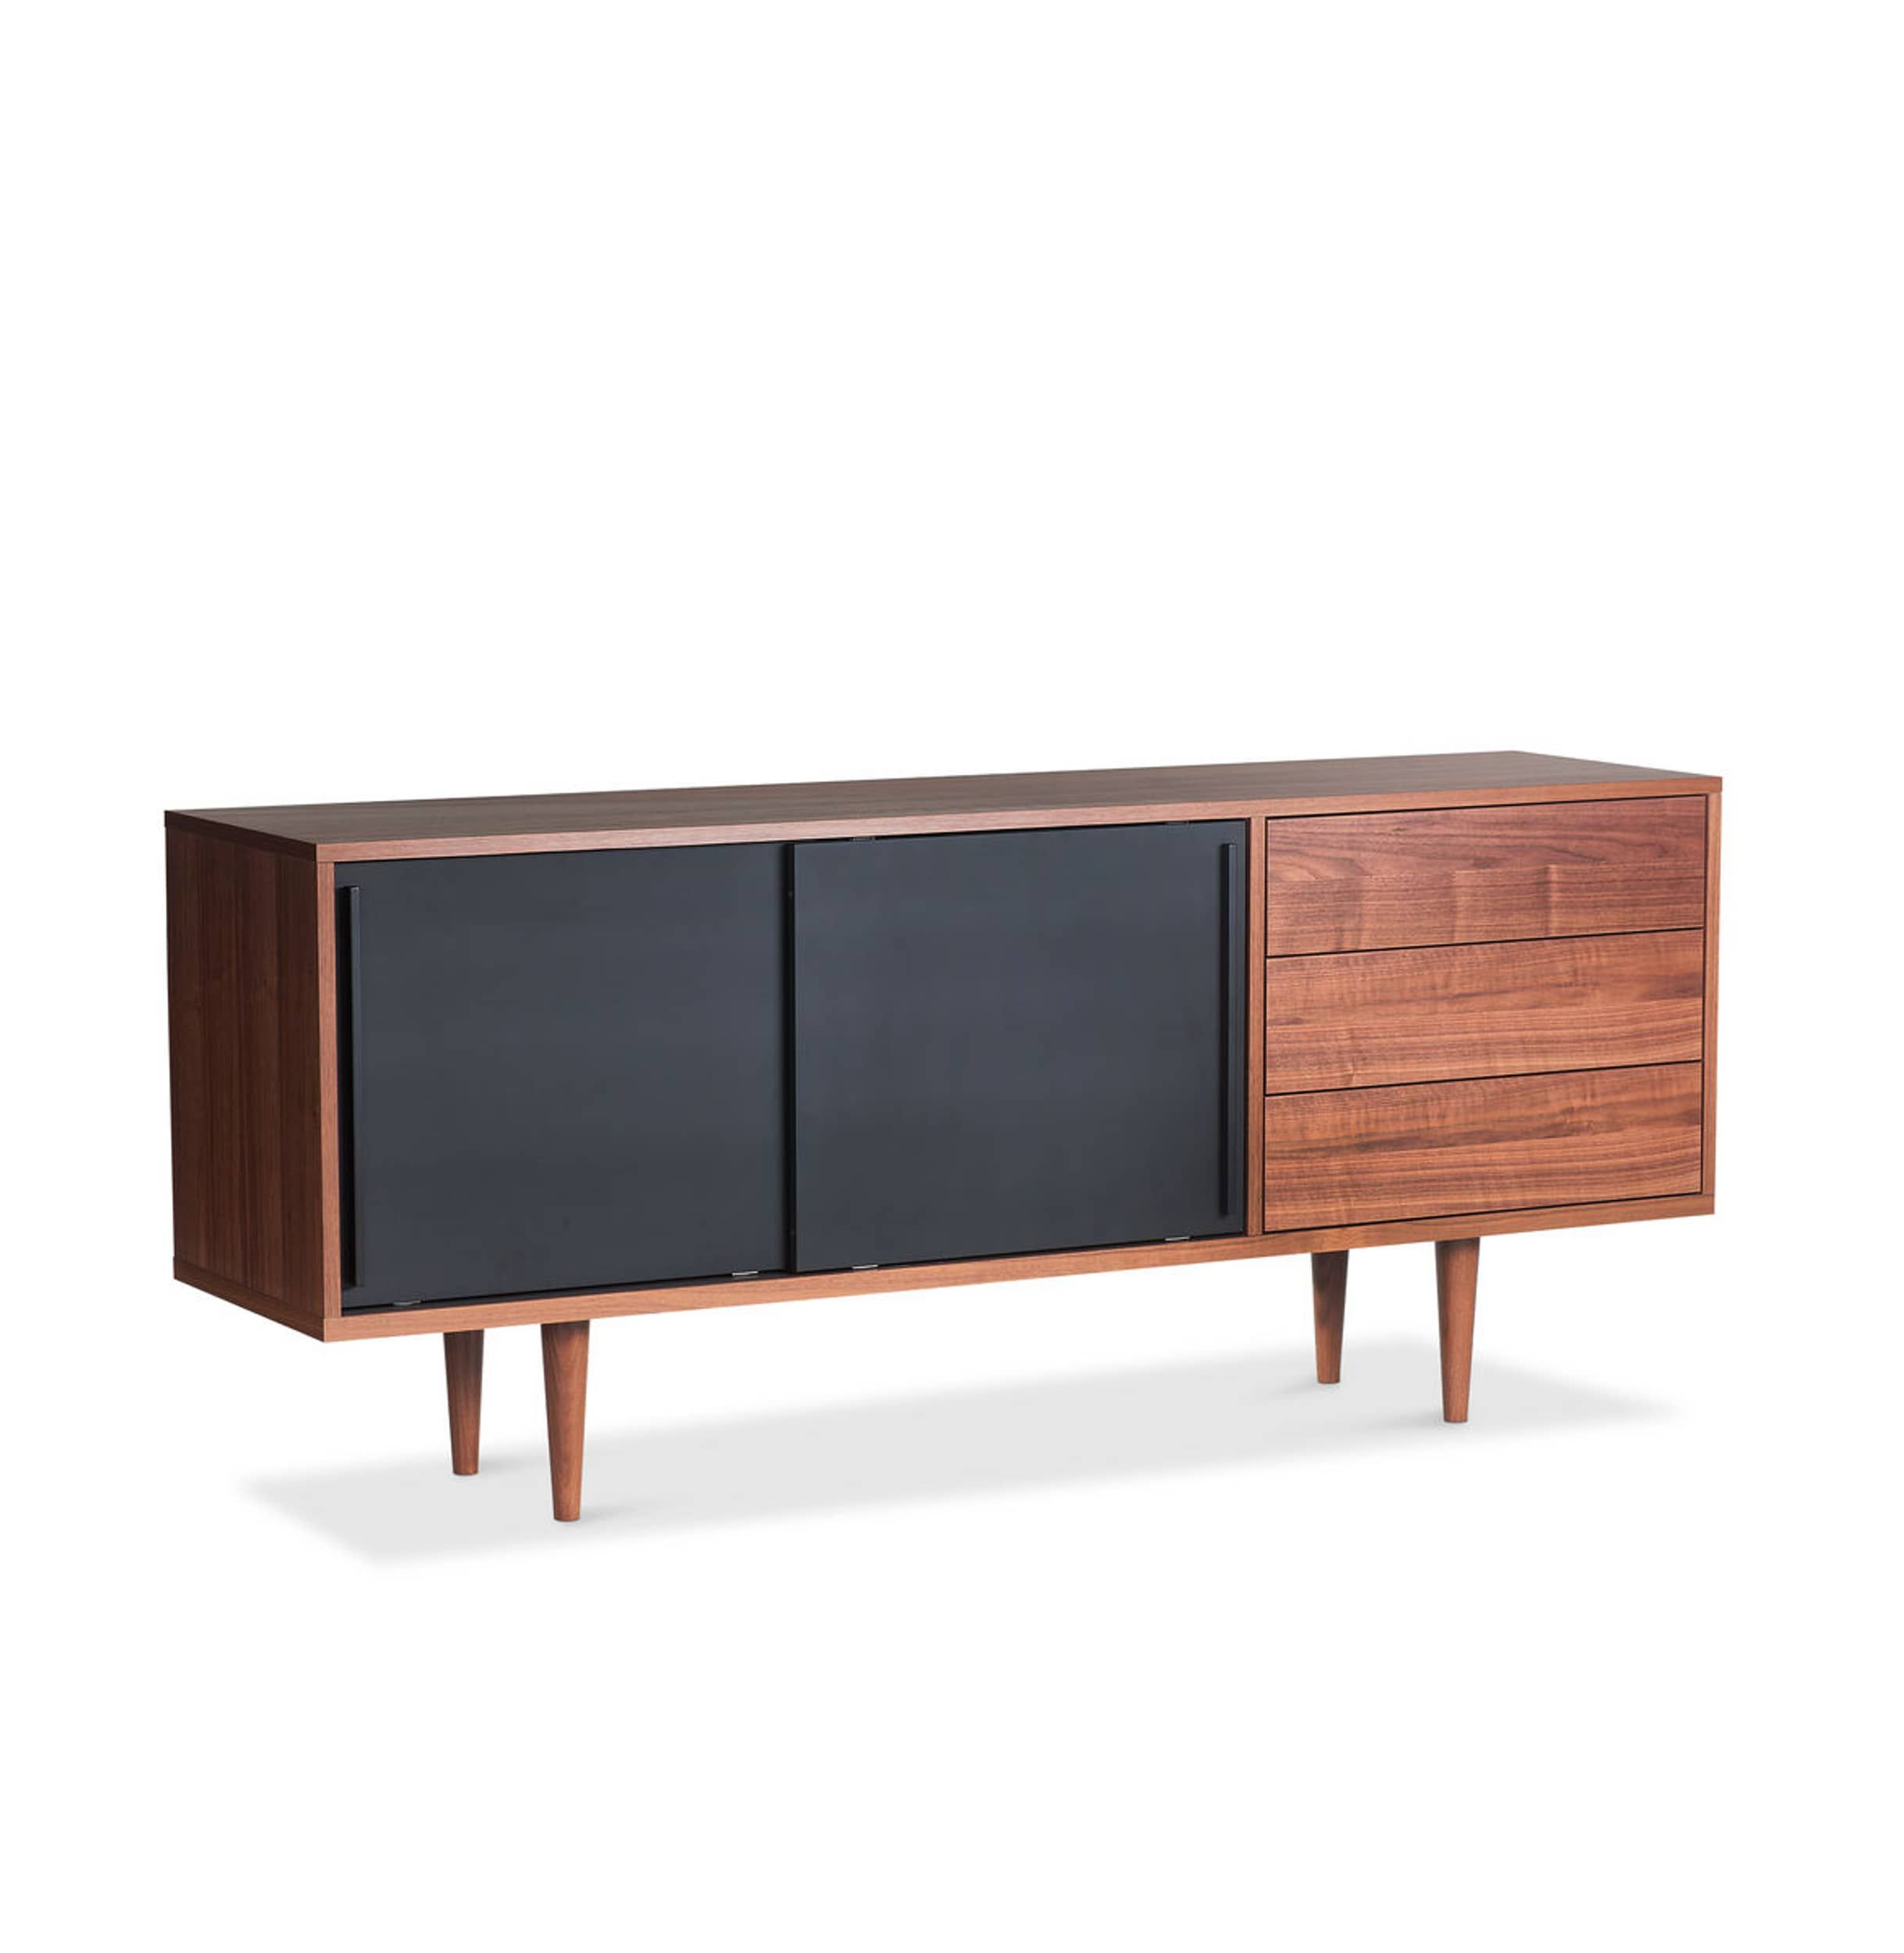 Offenes Sideboard Anina Sideboard Bequem Online Bestellen Interio Ch Dining Room